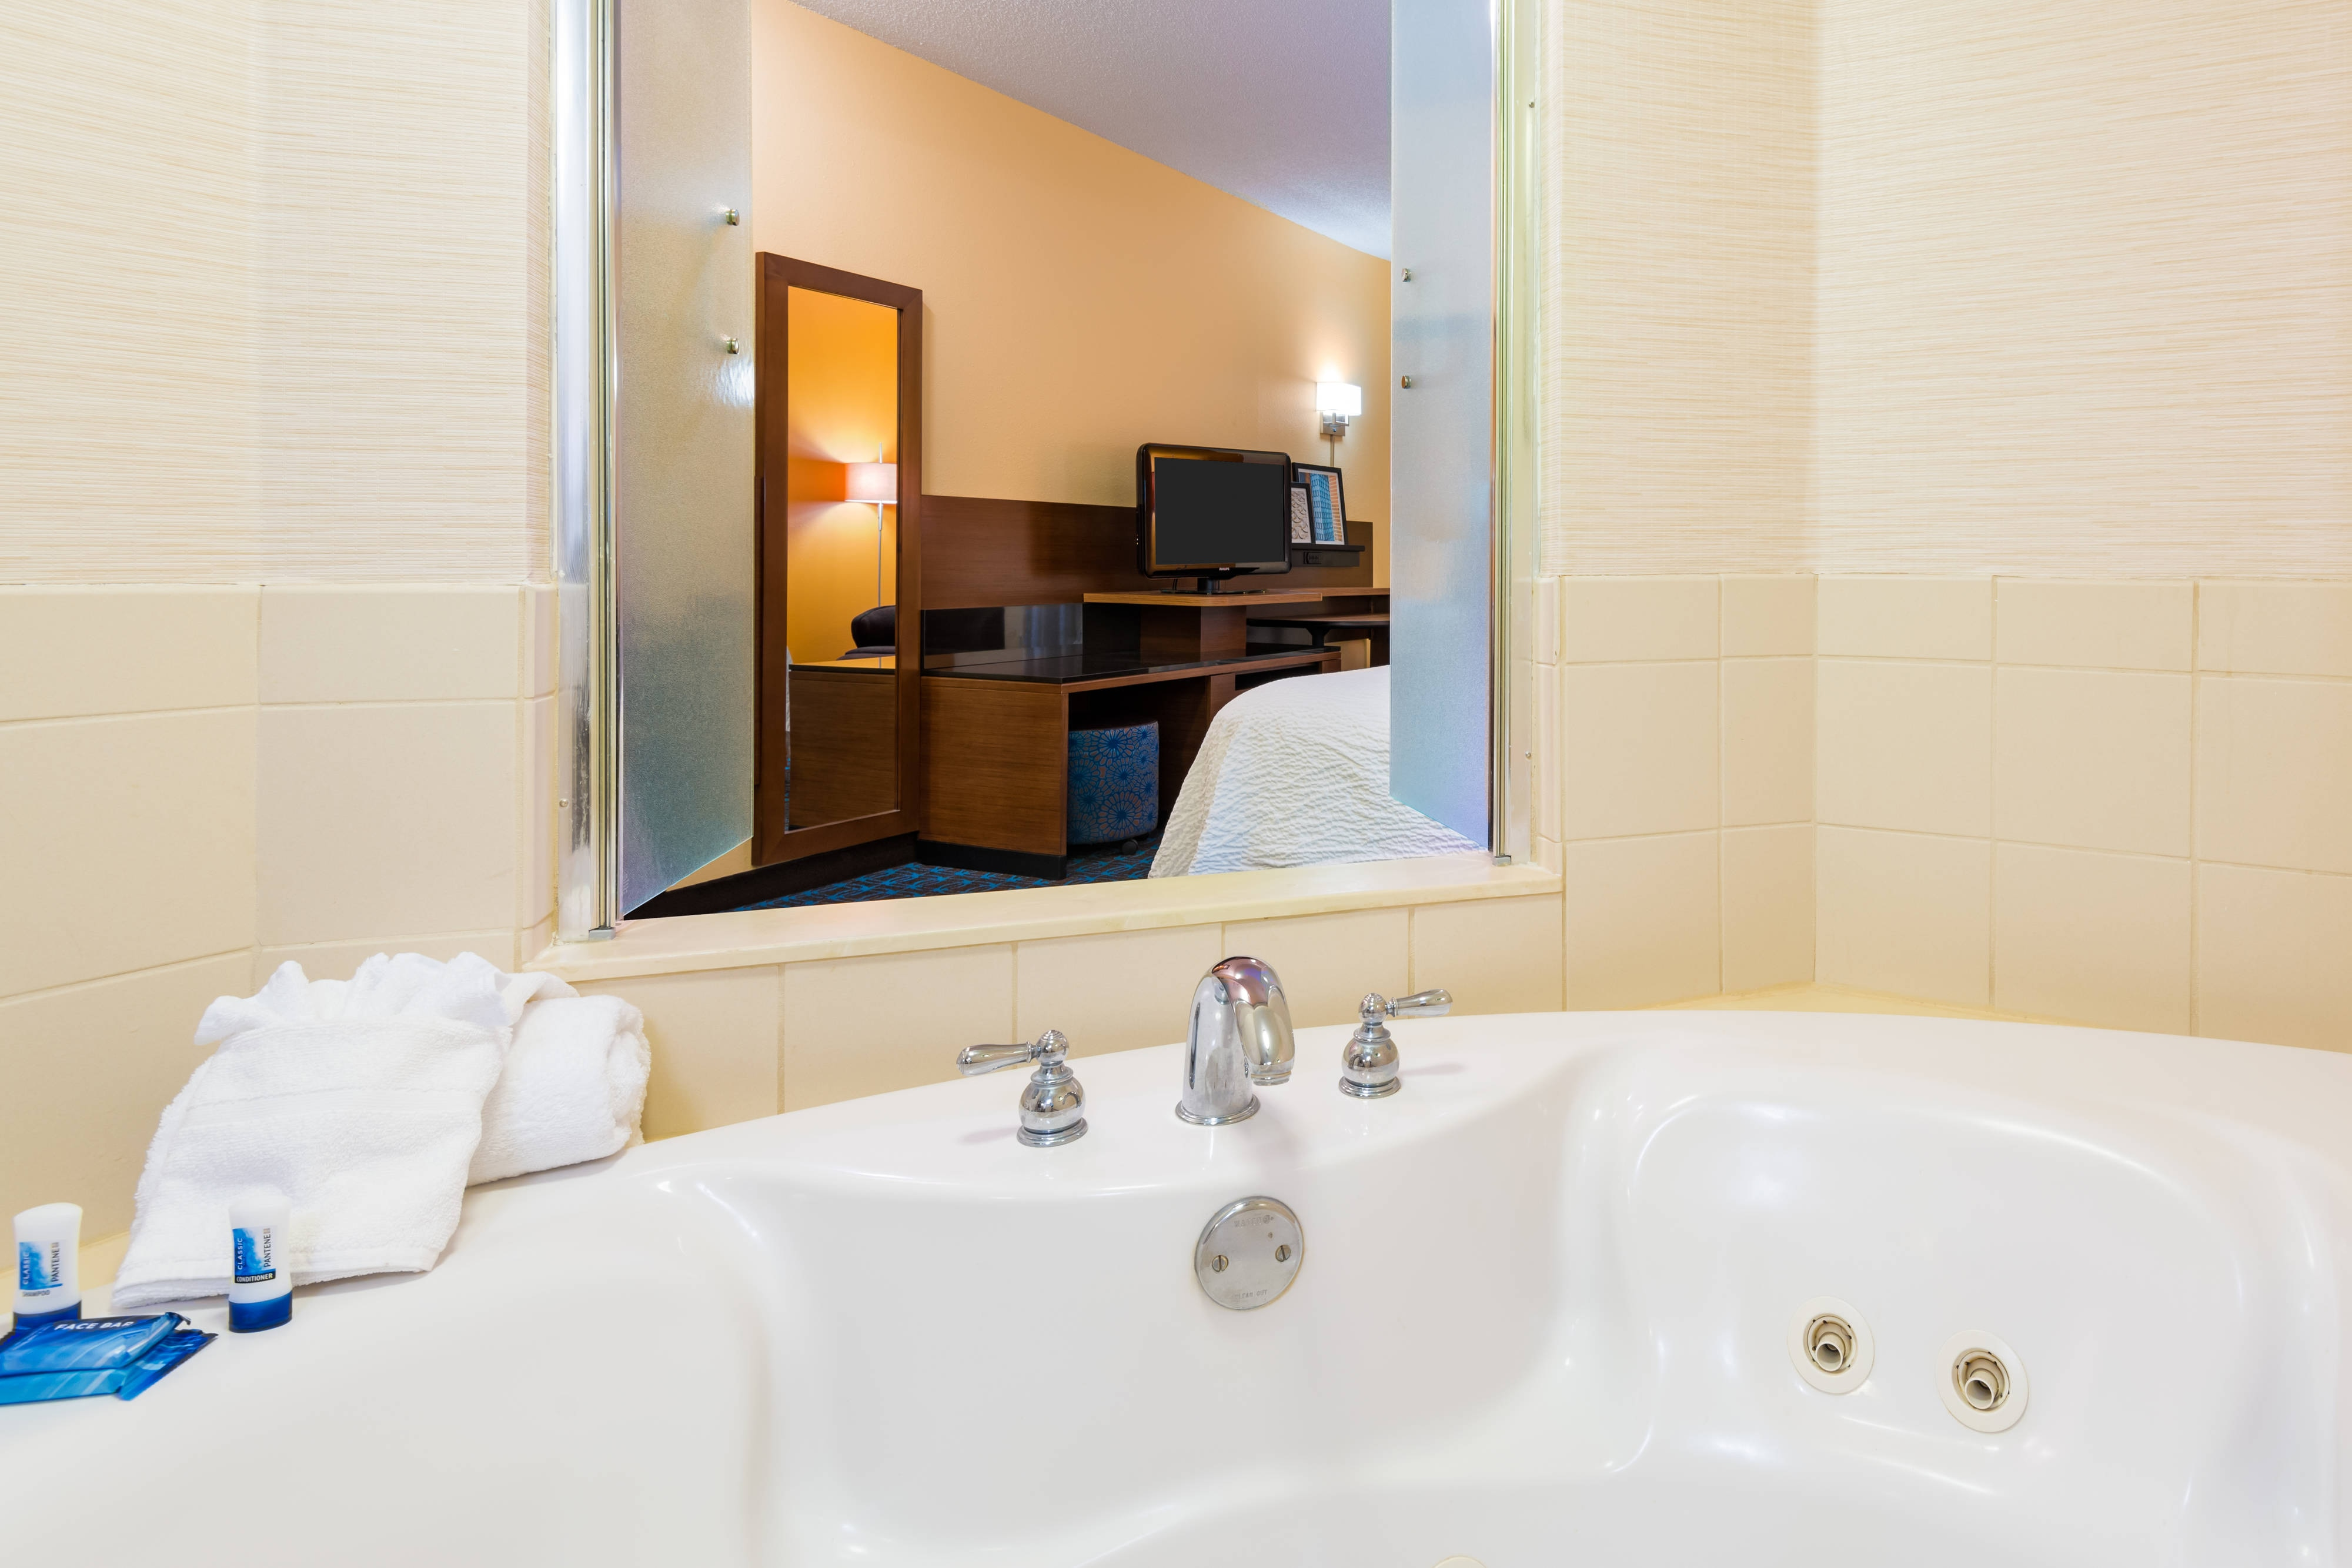 Clearwater hotel with in-room whirlpool spa